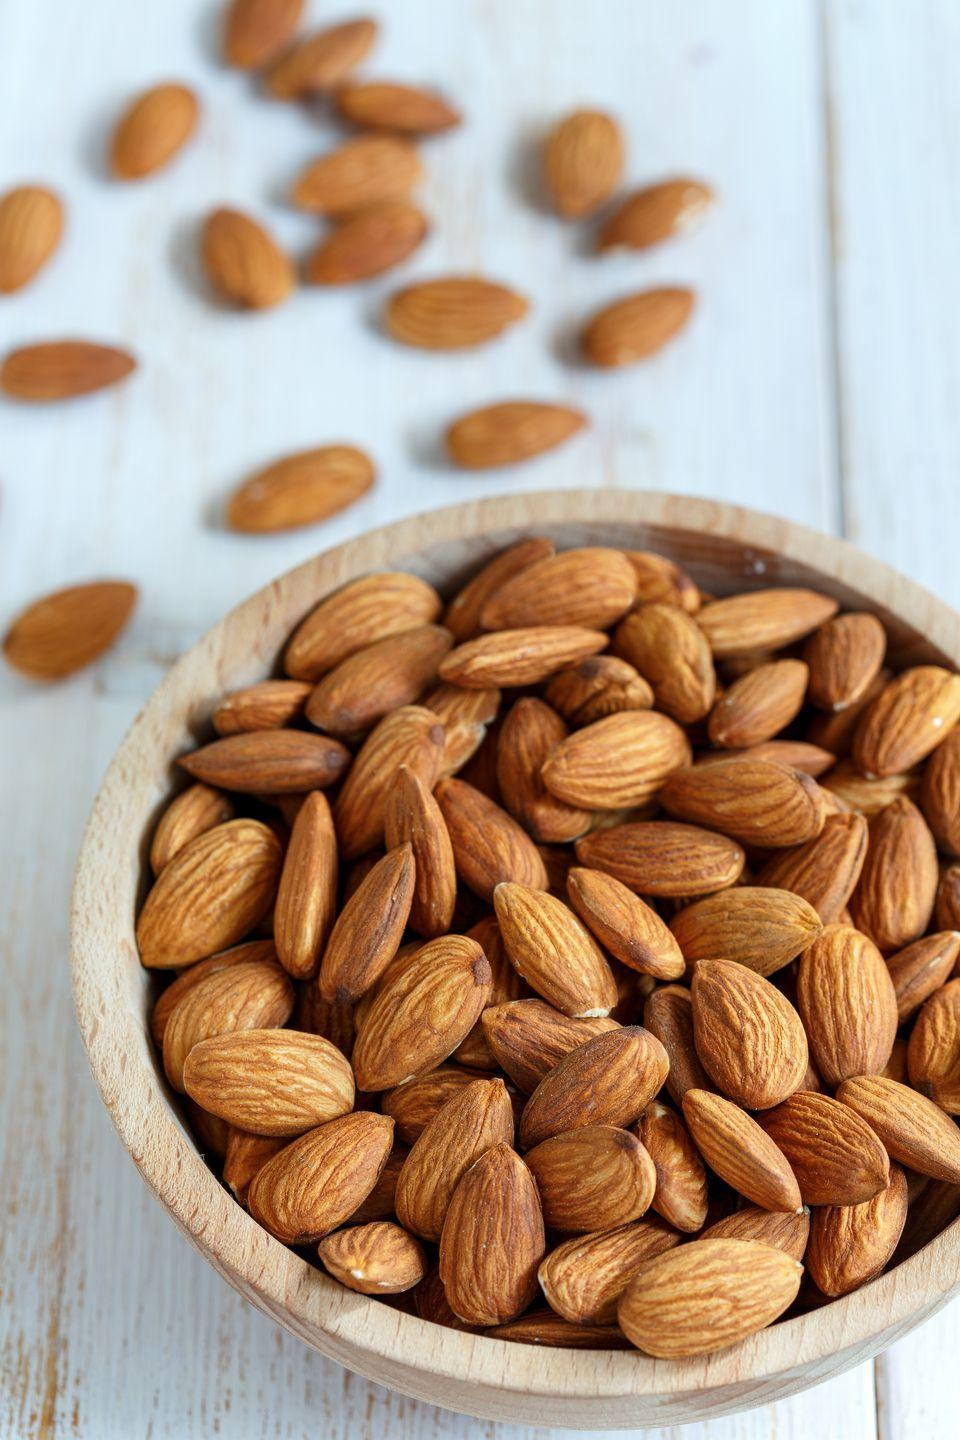 "<p>If you're on the hunt for a snack, <a href=""https://www.goodhousekeeping.com/health/diet-nutrition/a19503705/almonds-nutrition/"" rel=""nofollow noopener"" target=""_blank"" data-ylk=""slk:consider picking up some almonds"" class=""link rapid-noclick-resp"">consider picking up some almonds</a>. Population <a href=""https://www.ncbi.nlm.nih.gov/pubmed/27752301"" rel=""nofollow noopener"" target=""_blank"" data-ylk=""slk:studies"" class=""link rapid-noclick-resp"">studies</a> have shown that consistent intake of almonds reduces risk of heart disease <a href=""https://www.goodhousekeeping.com/health/diet-nutrition/a18527/high-blood-pressure-natural-remedies/"" rel=""nofollow noopener"" target=""_blank"" data-ylk=""slk:by improving cholesterol levels"" class=""link rapid-noclick-resp"">by improving cholesterol levels</a> — maintaining HDL and lowering LDL. </p>"